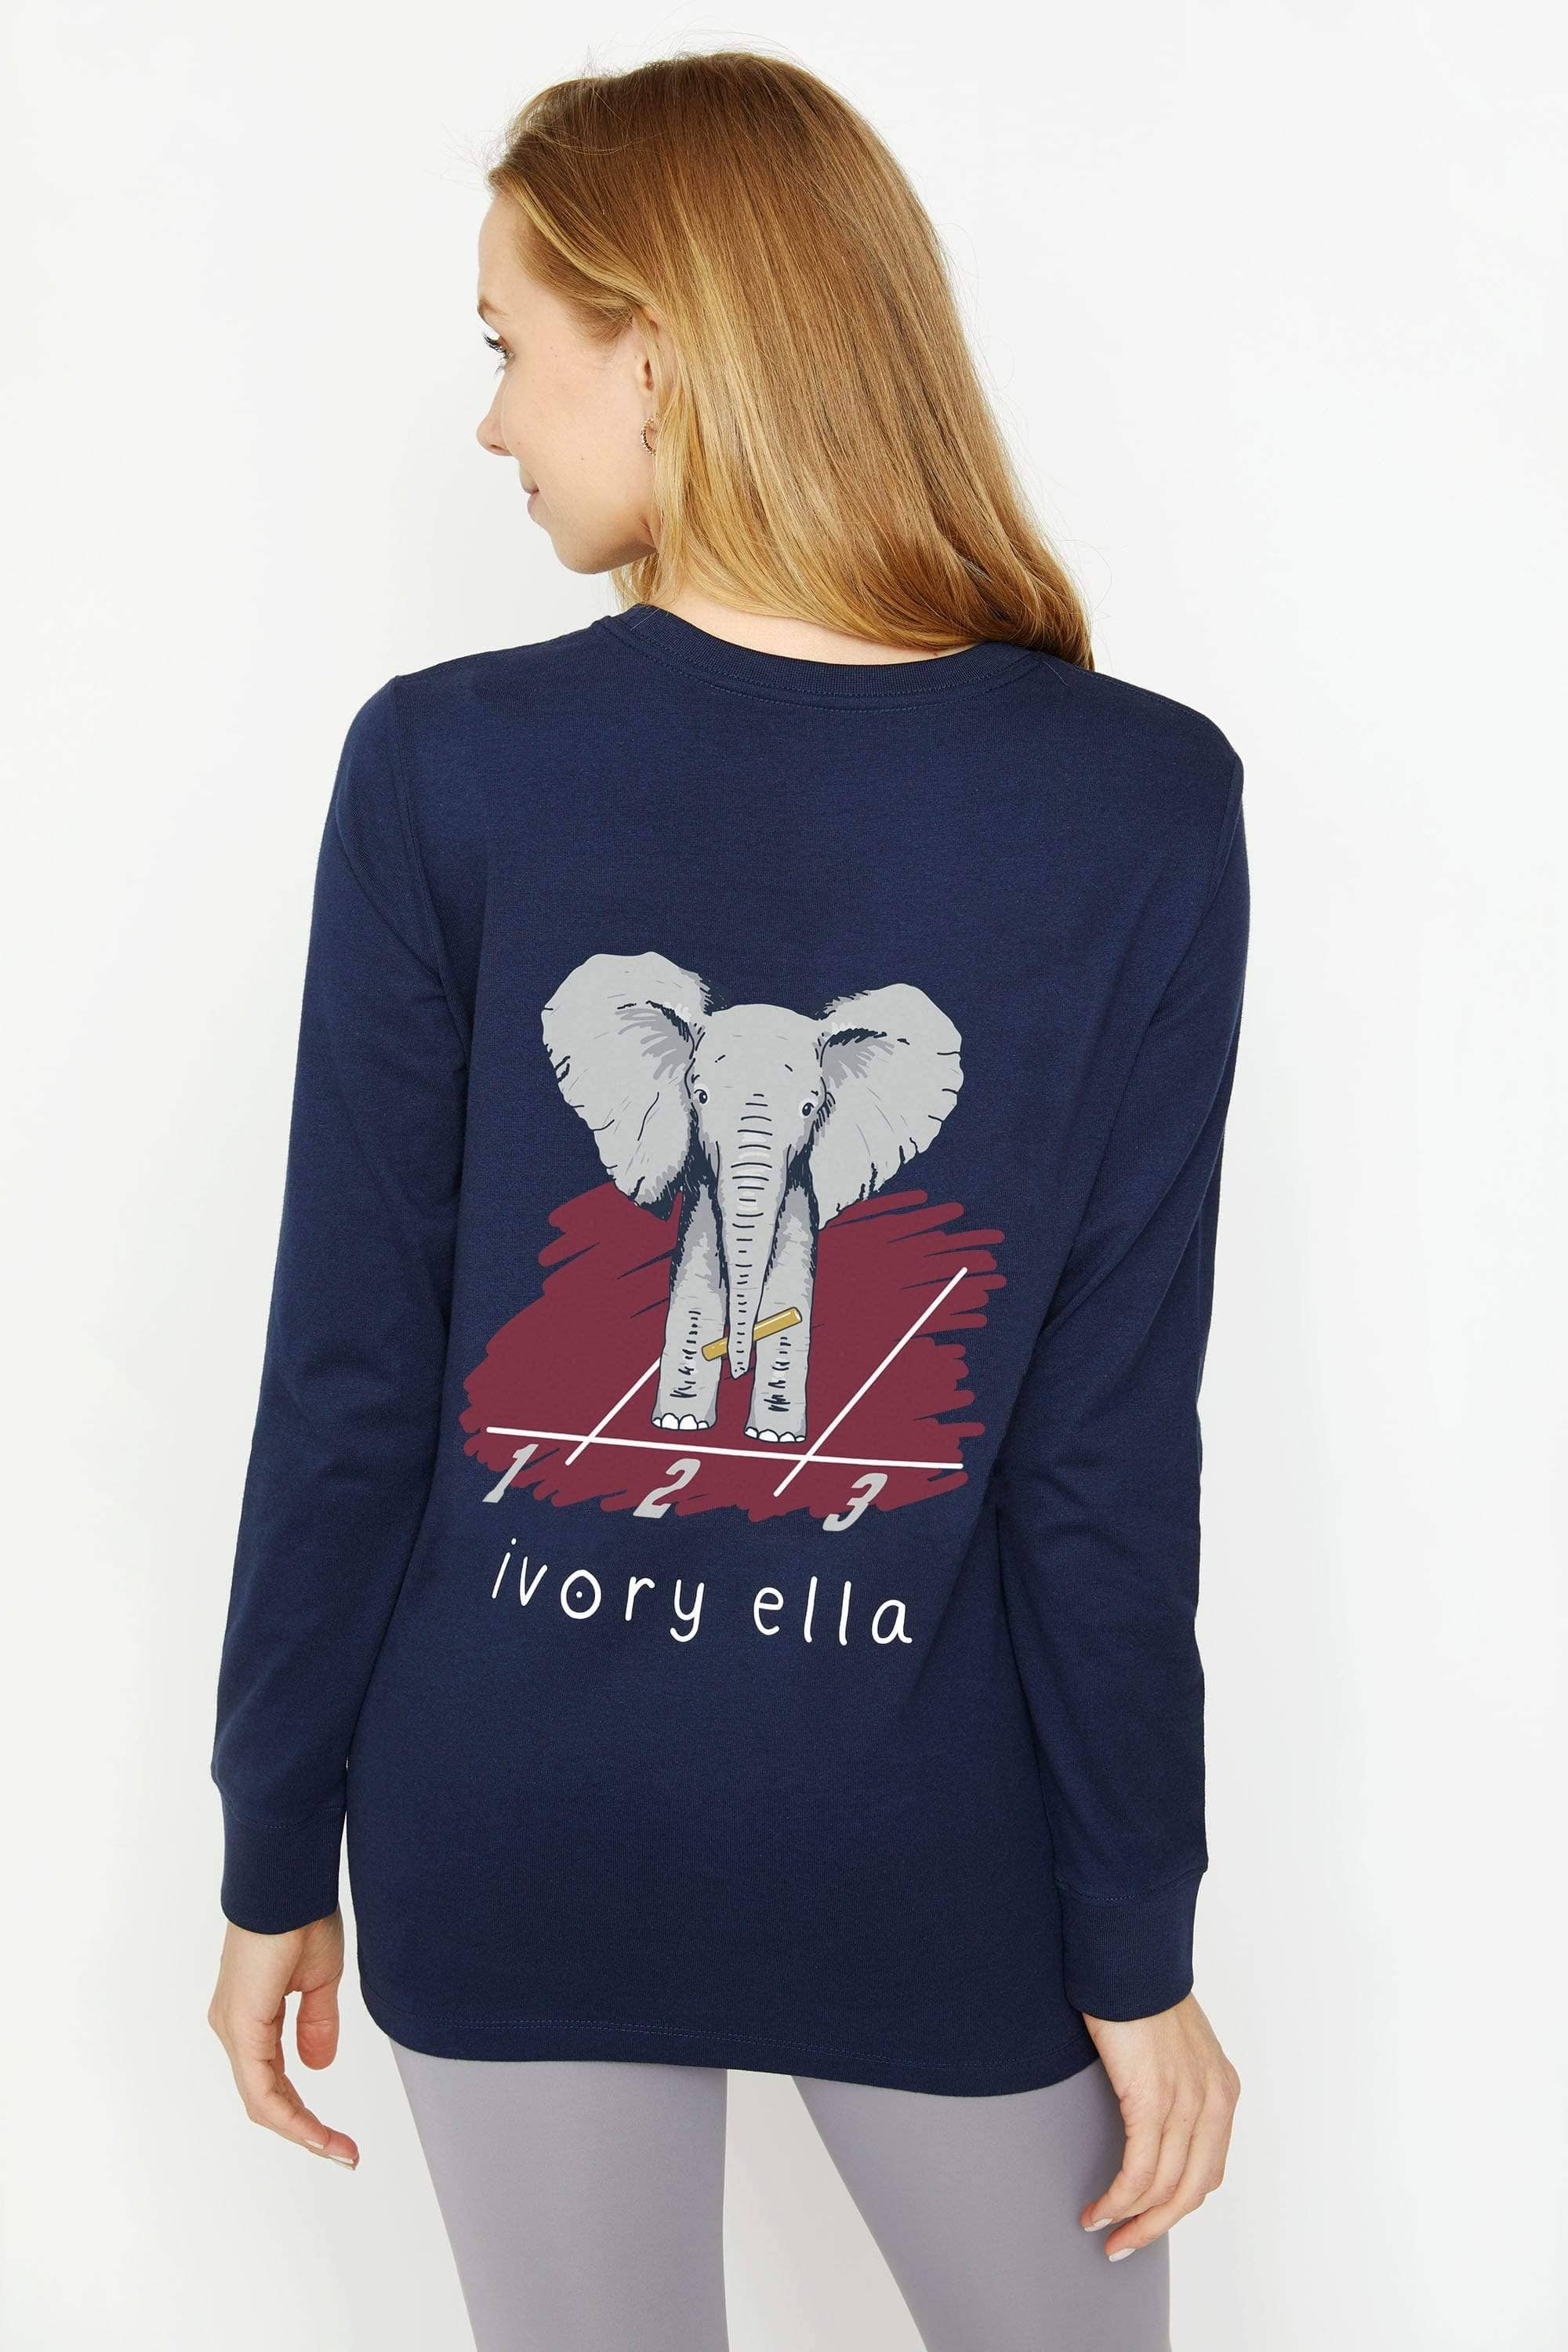 Ivory Ella Women's Long Sleeve Shirts XXS Ella Fit Dark Navy Track Long Sleeve Tee